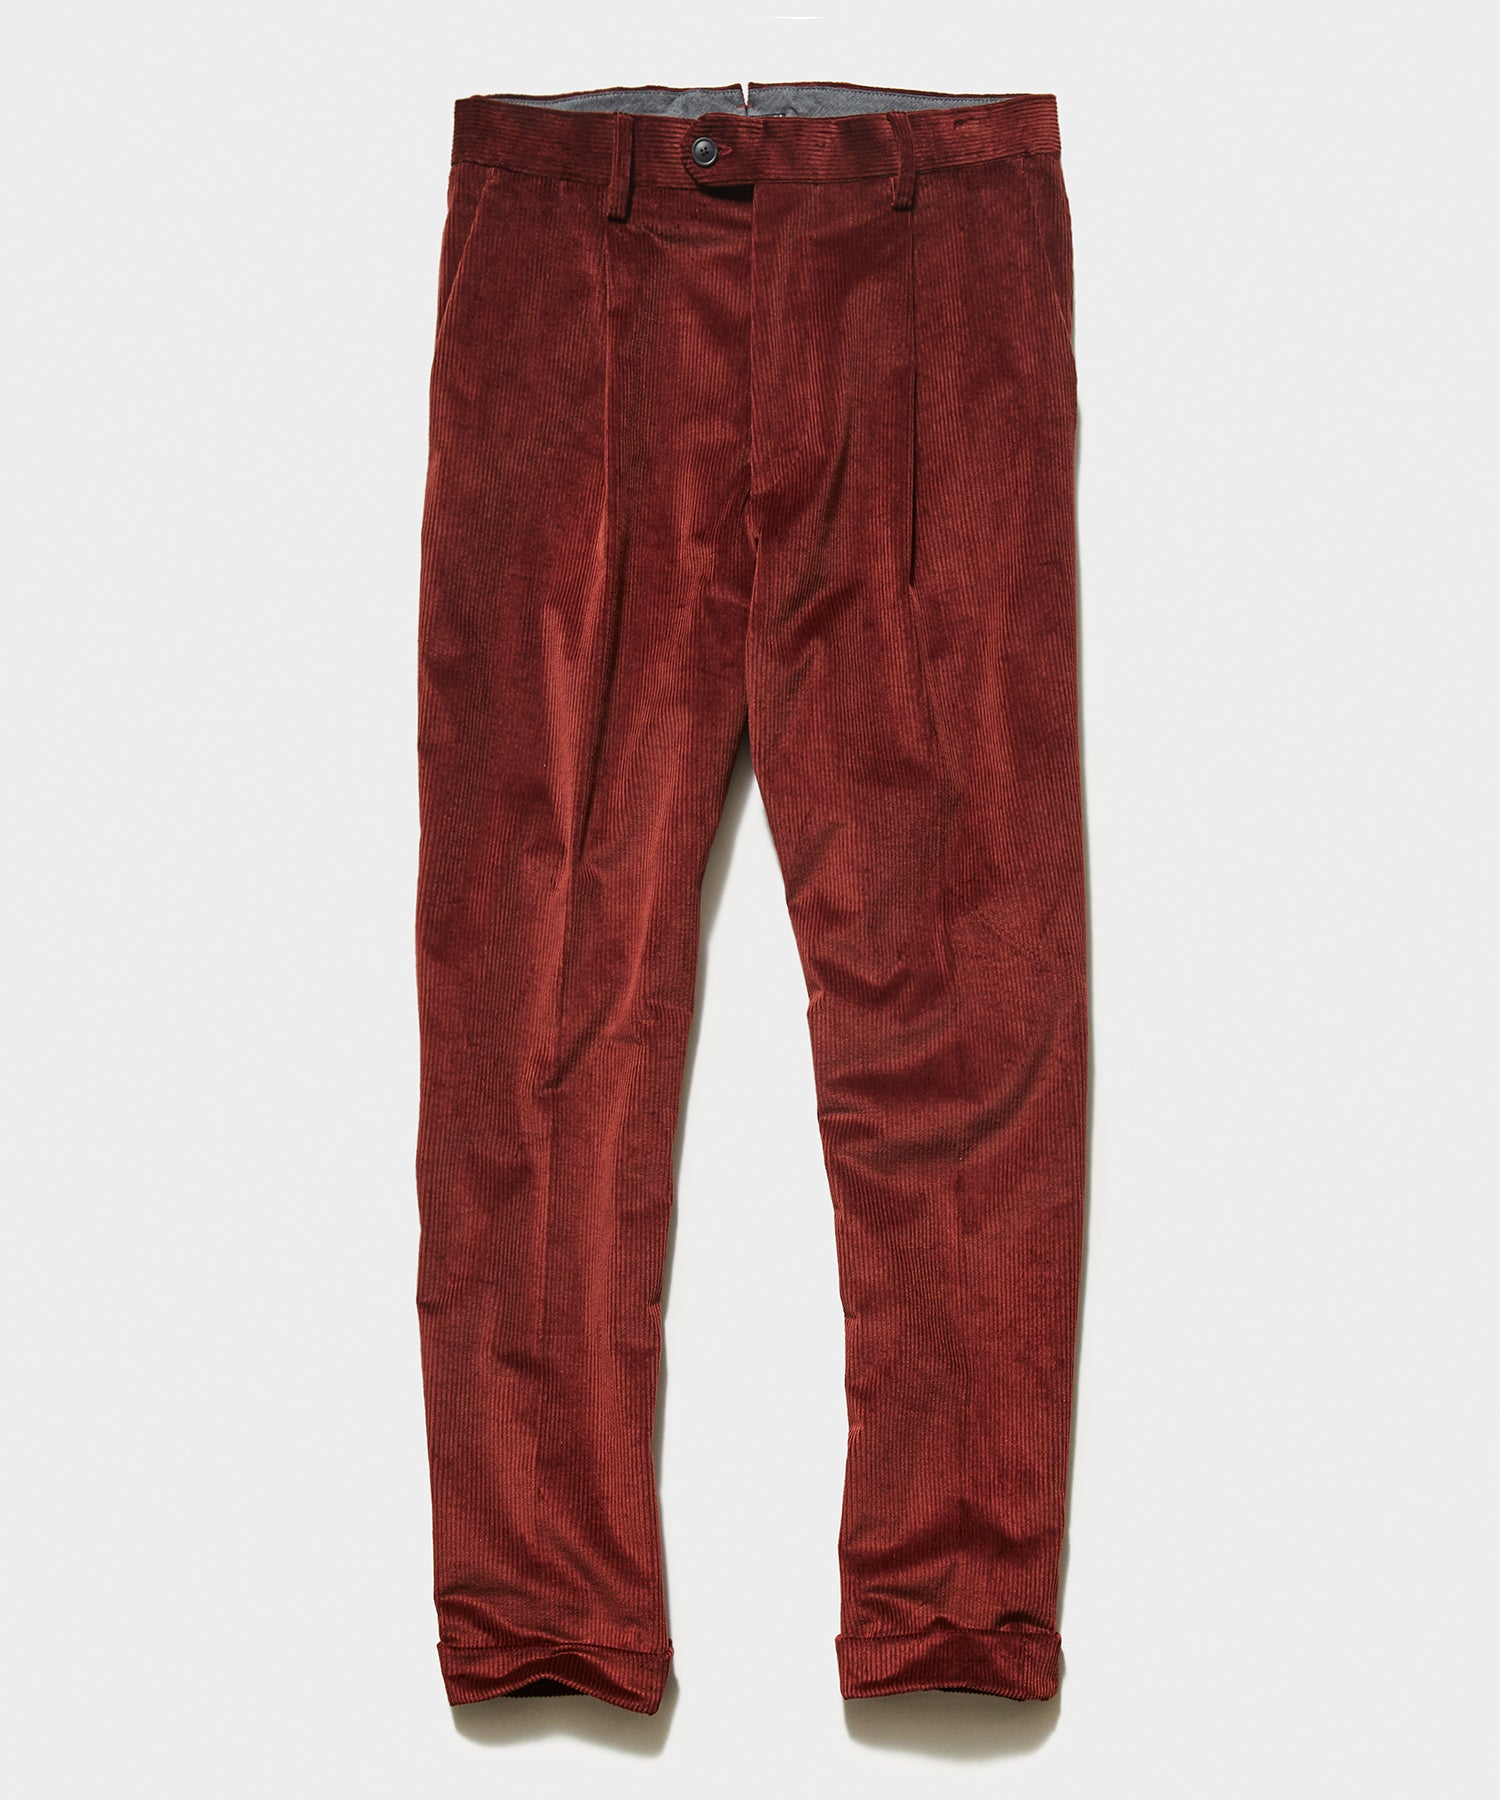 Italian Pleated Cord Trouser in Rust